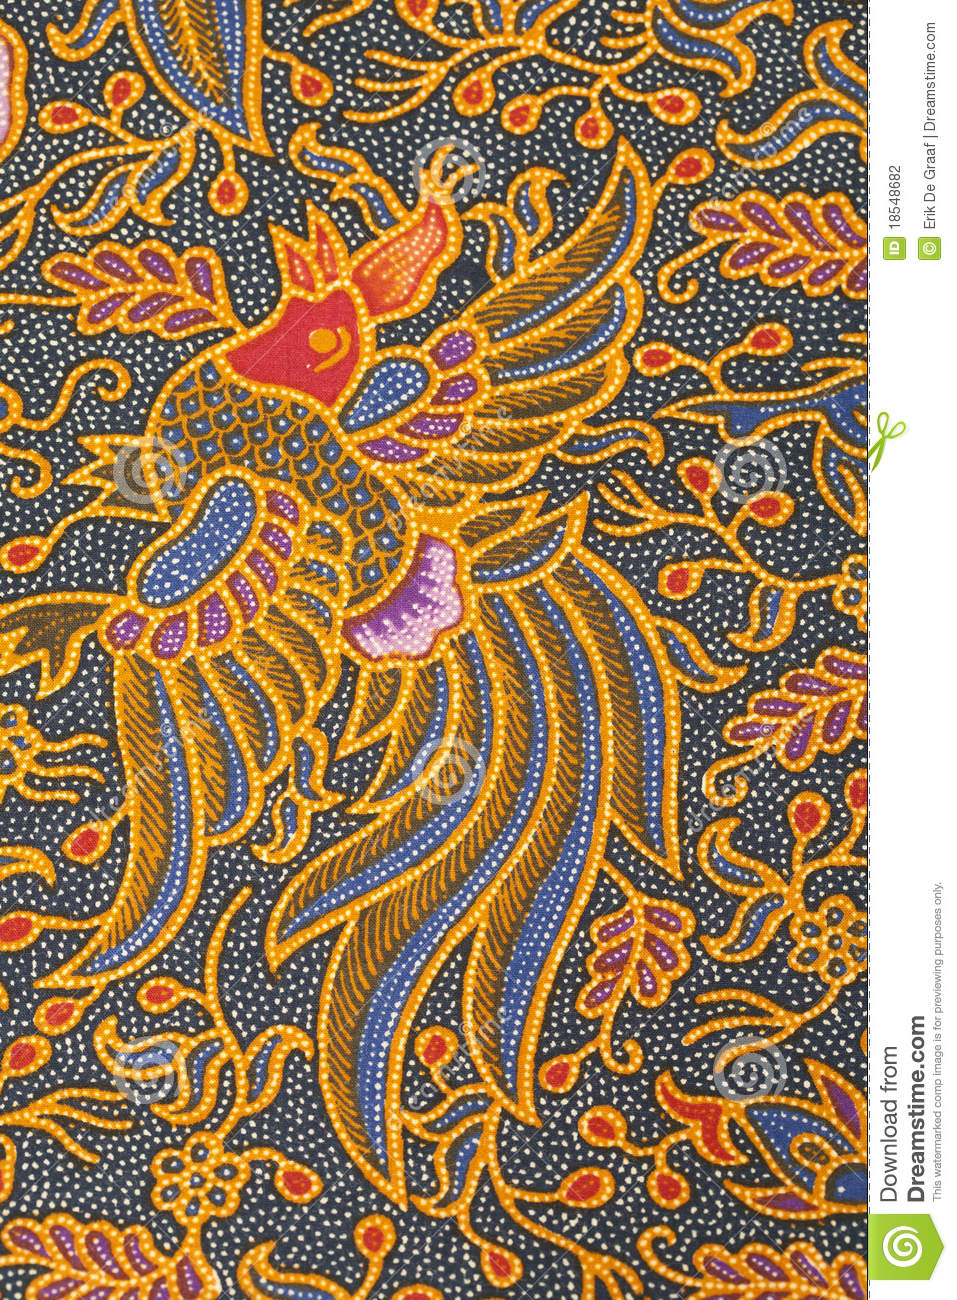 Batik Design Stock Photo. Image Of Close, Craft, Detail